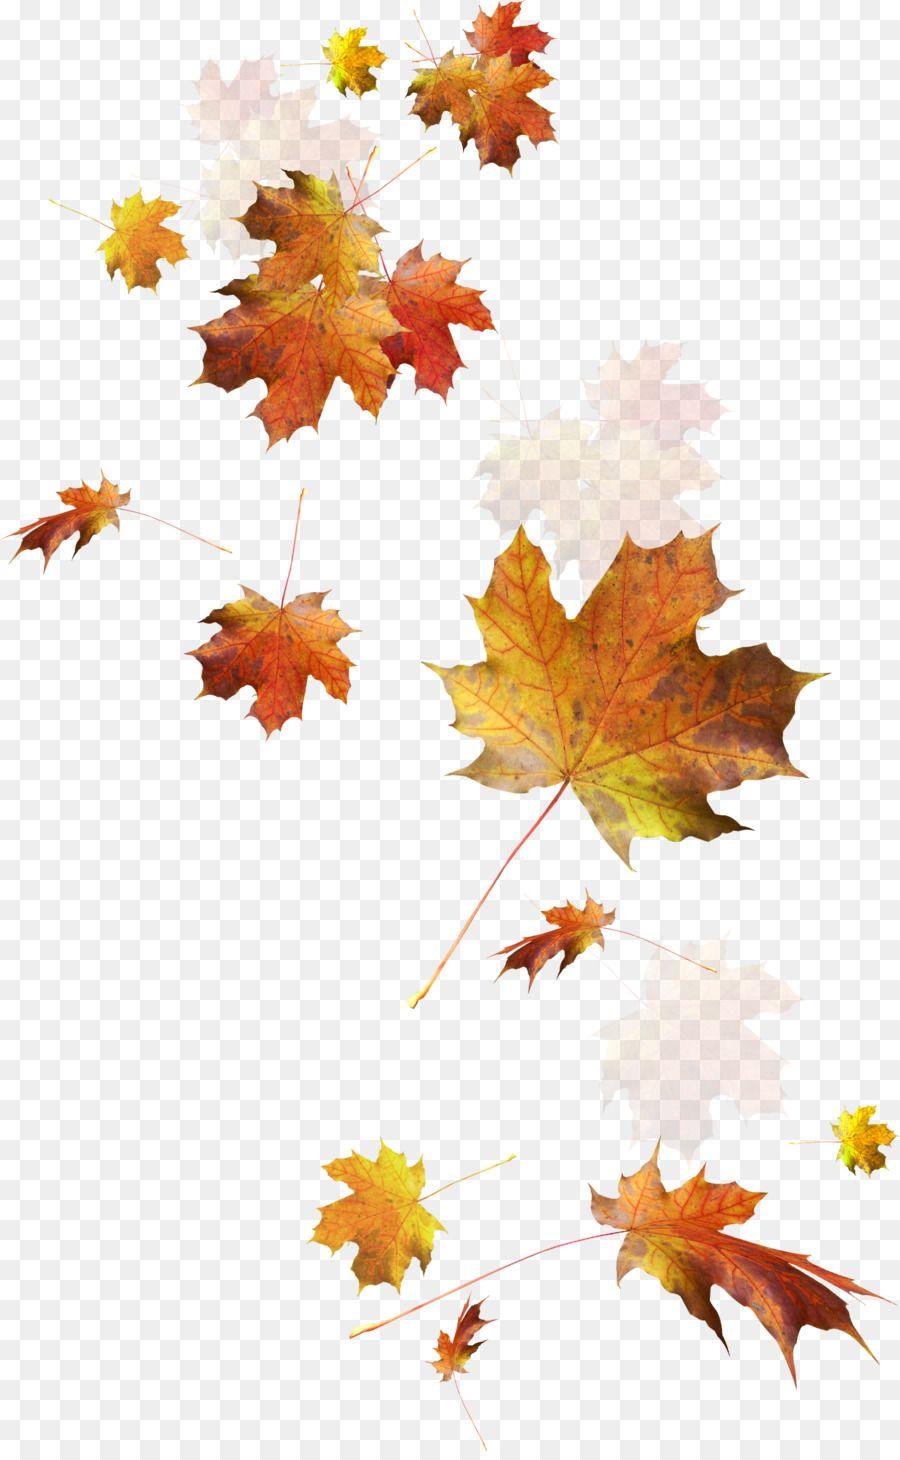 Drop Of Water Falling From A Leaf Wallpaper Autumn Leaves Autumn Leaf Color Falling Leaves